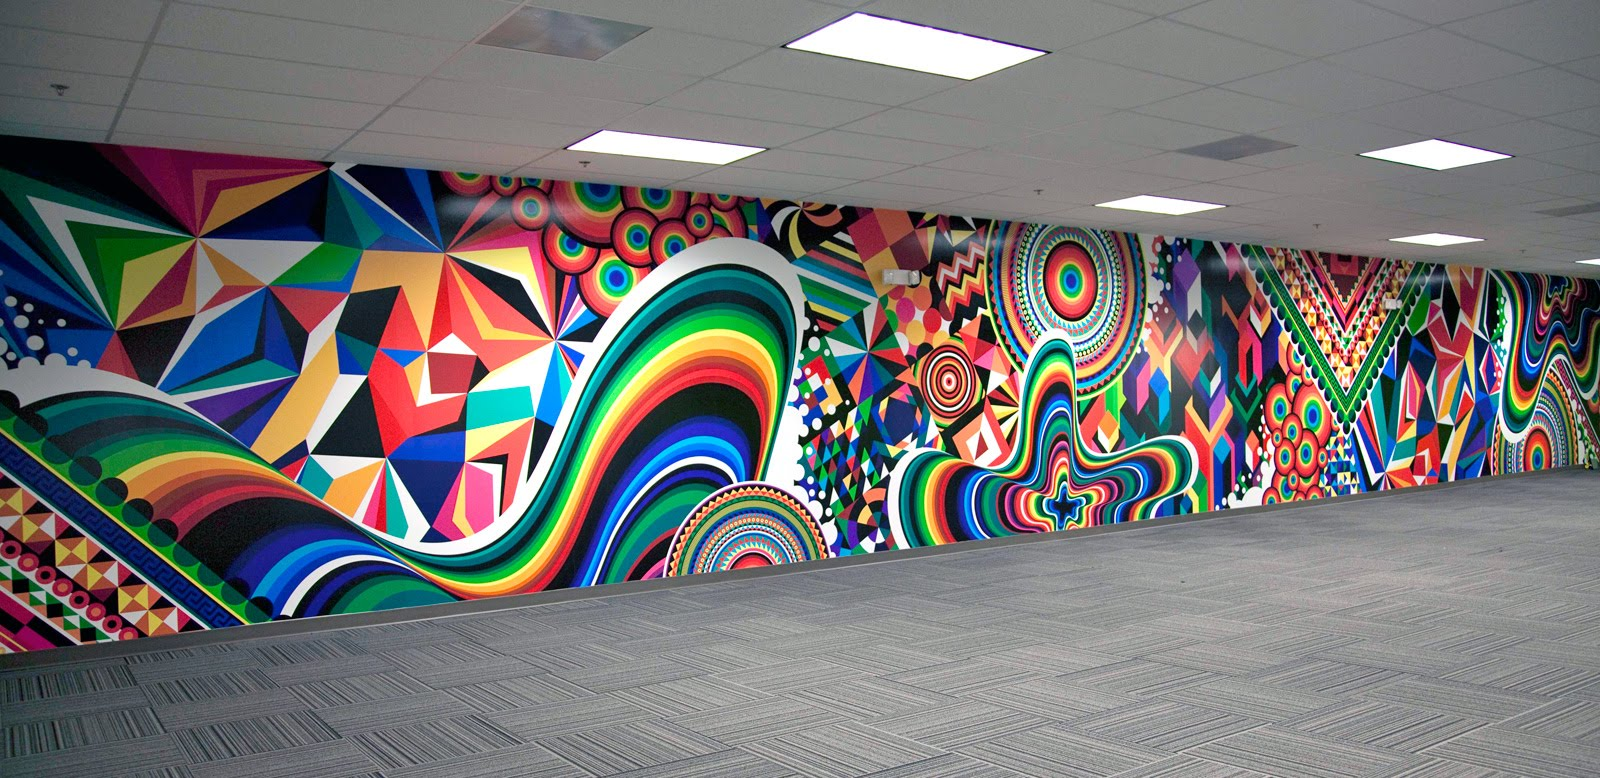 Mwm news blog super sized pop art op art for Art of mural painting